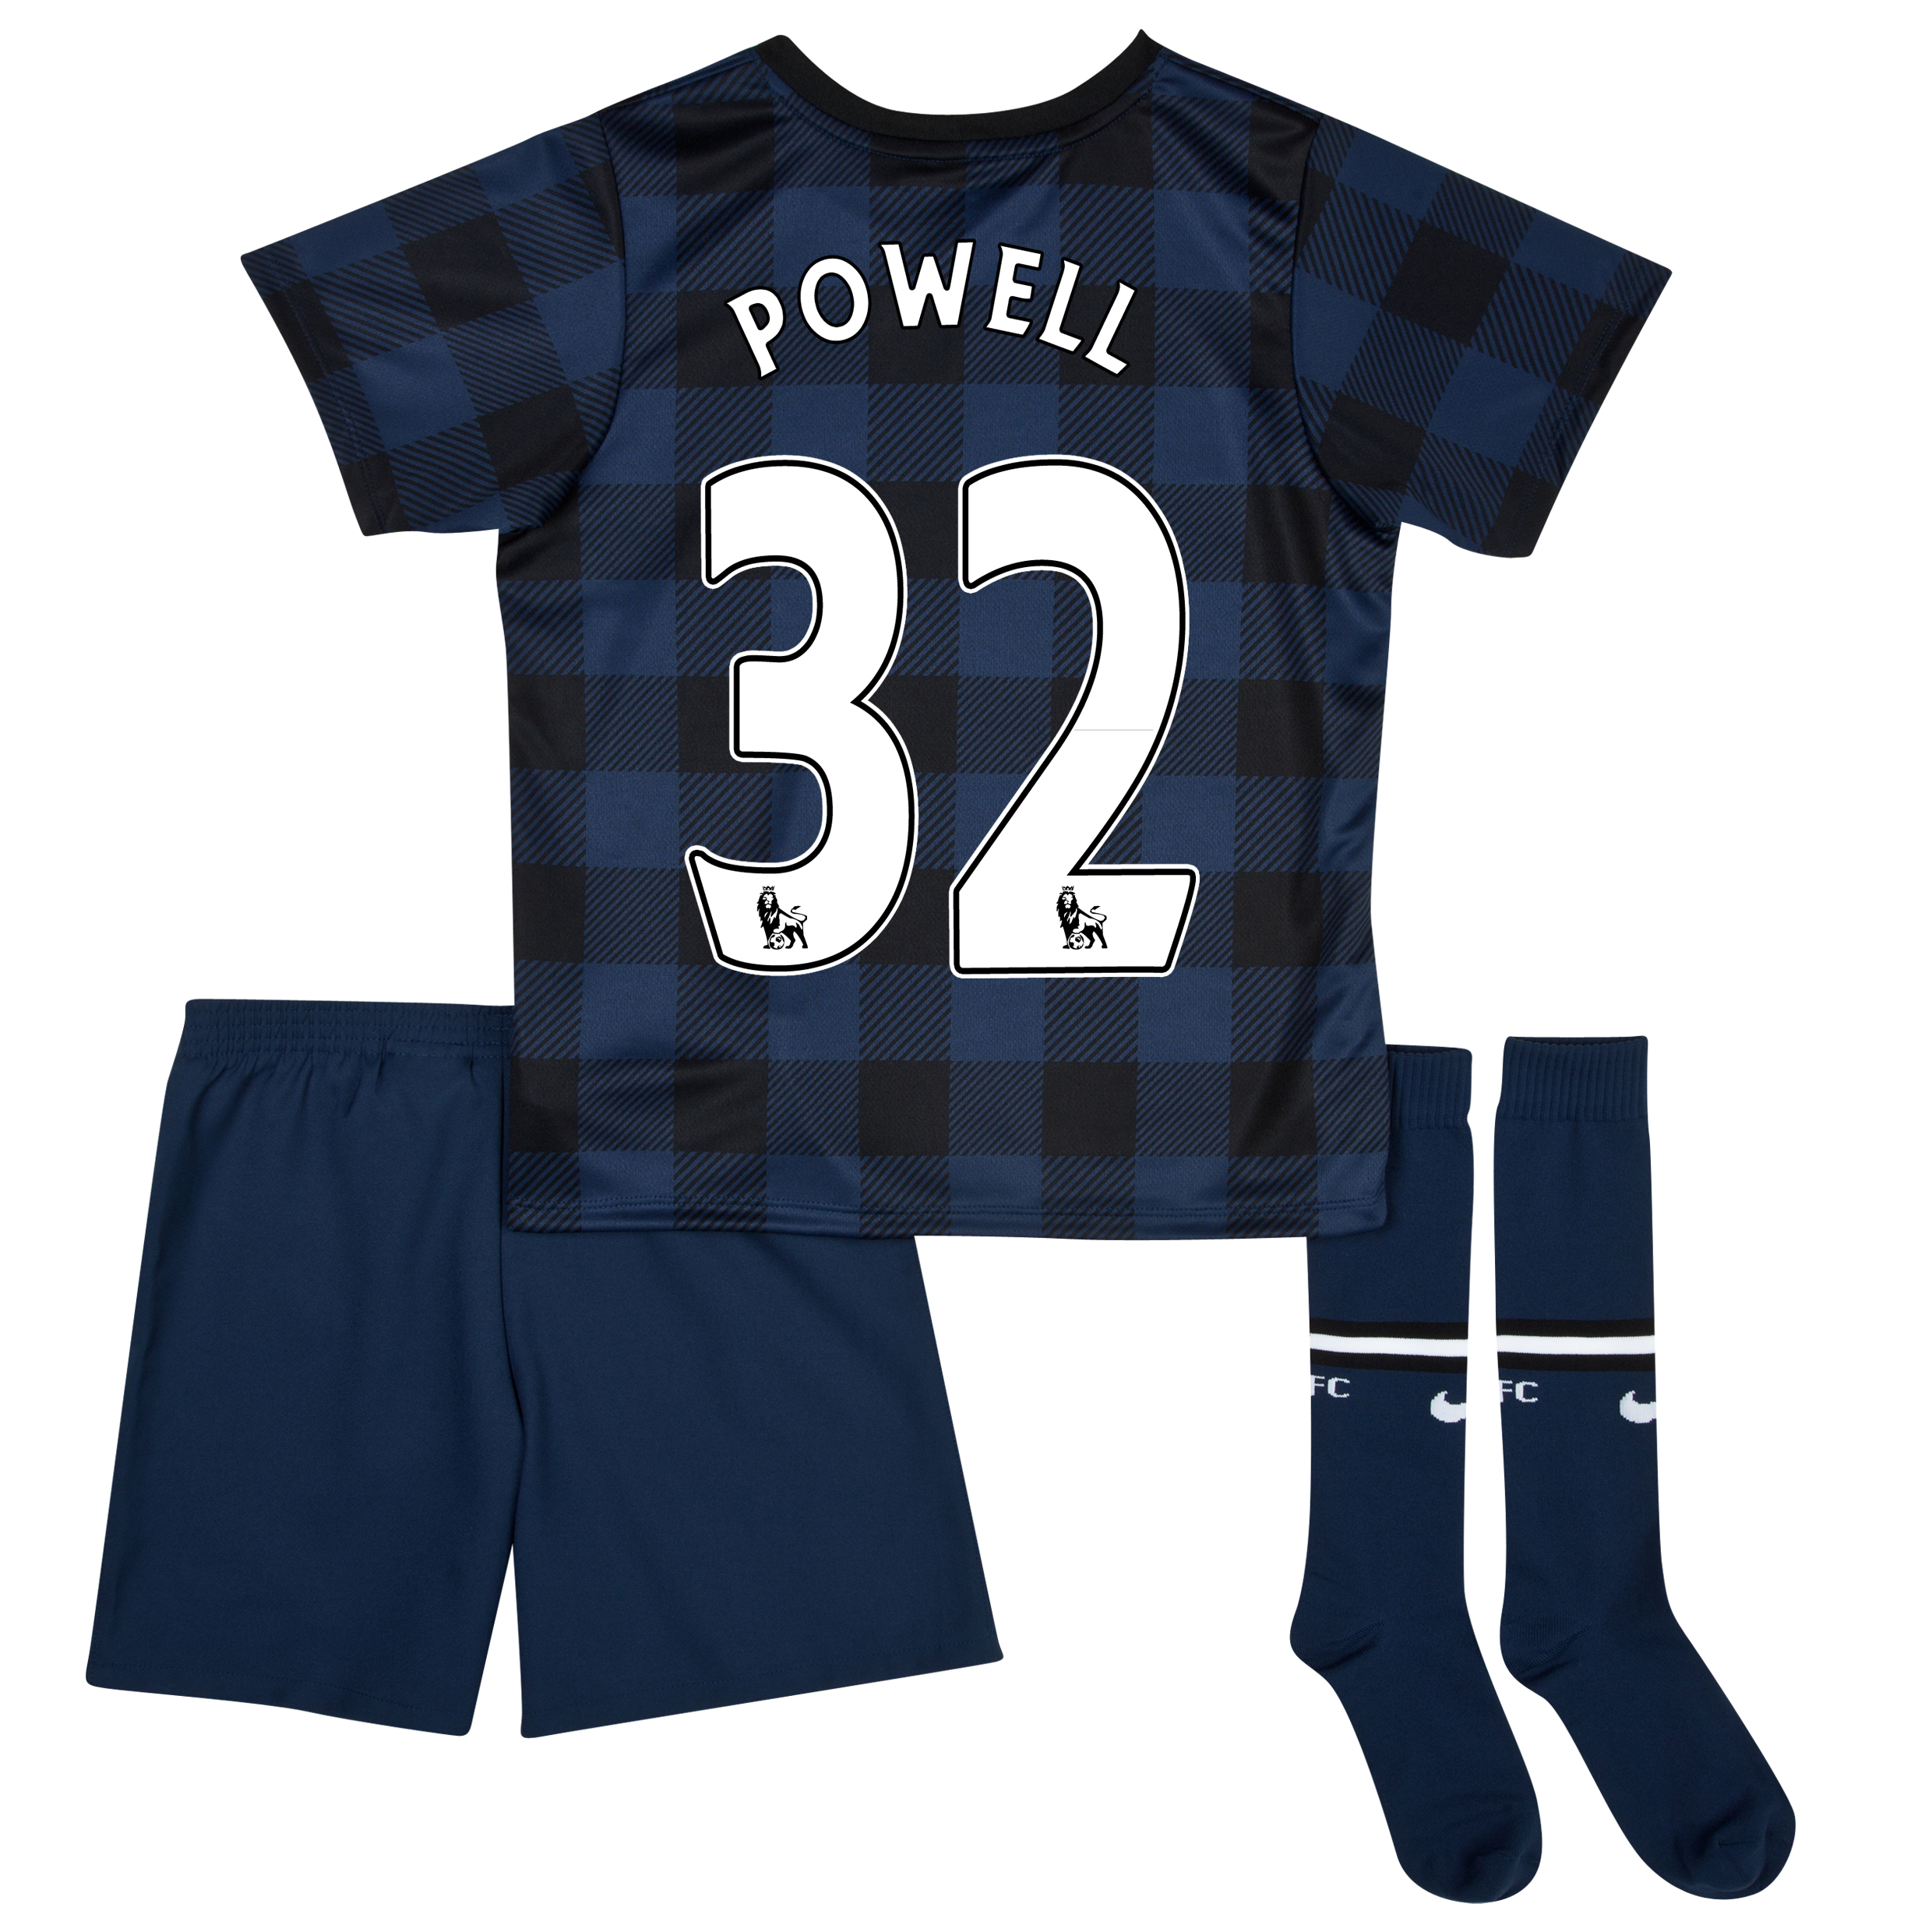 Manchester United Away Kit 2013/14 - Little Boys with Powell 32 printing